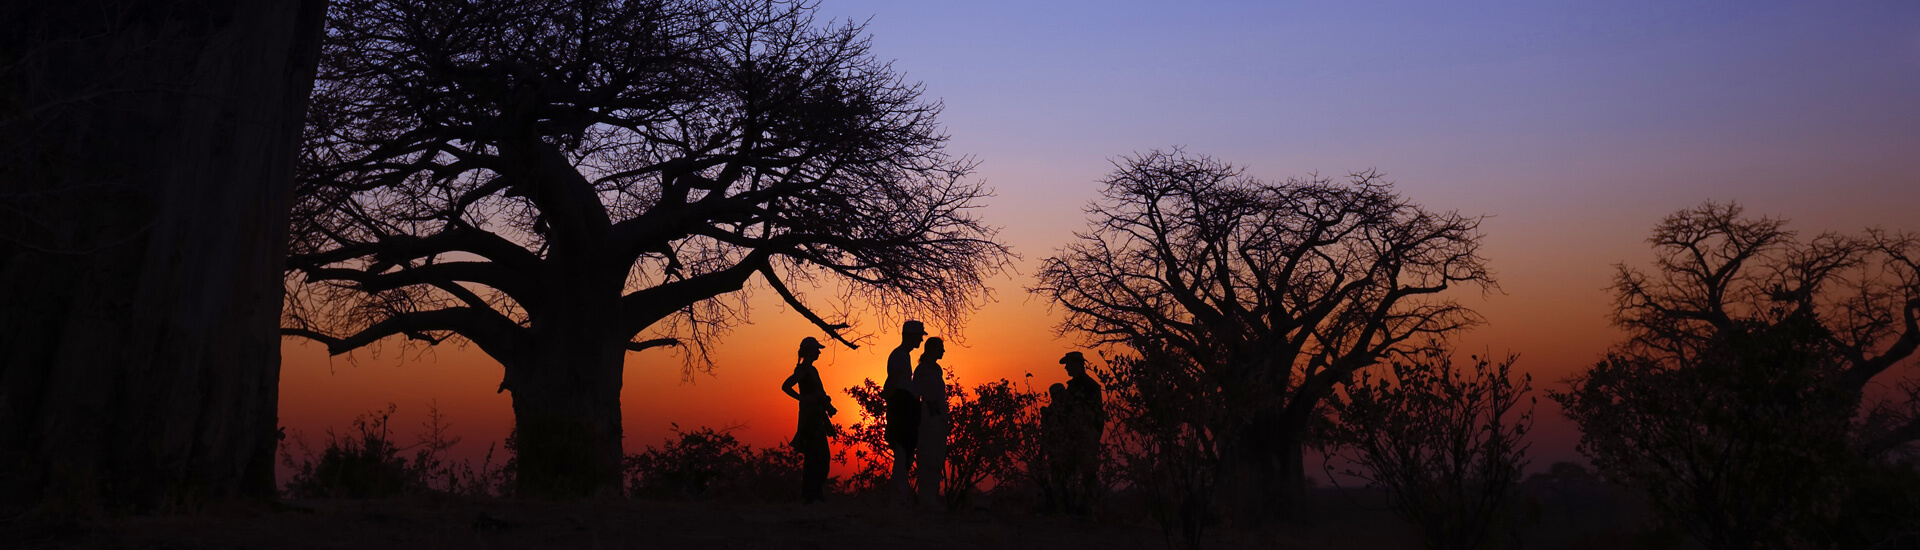 Sonnenuntergang in Mana Pools mit Baobabs.